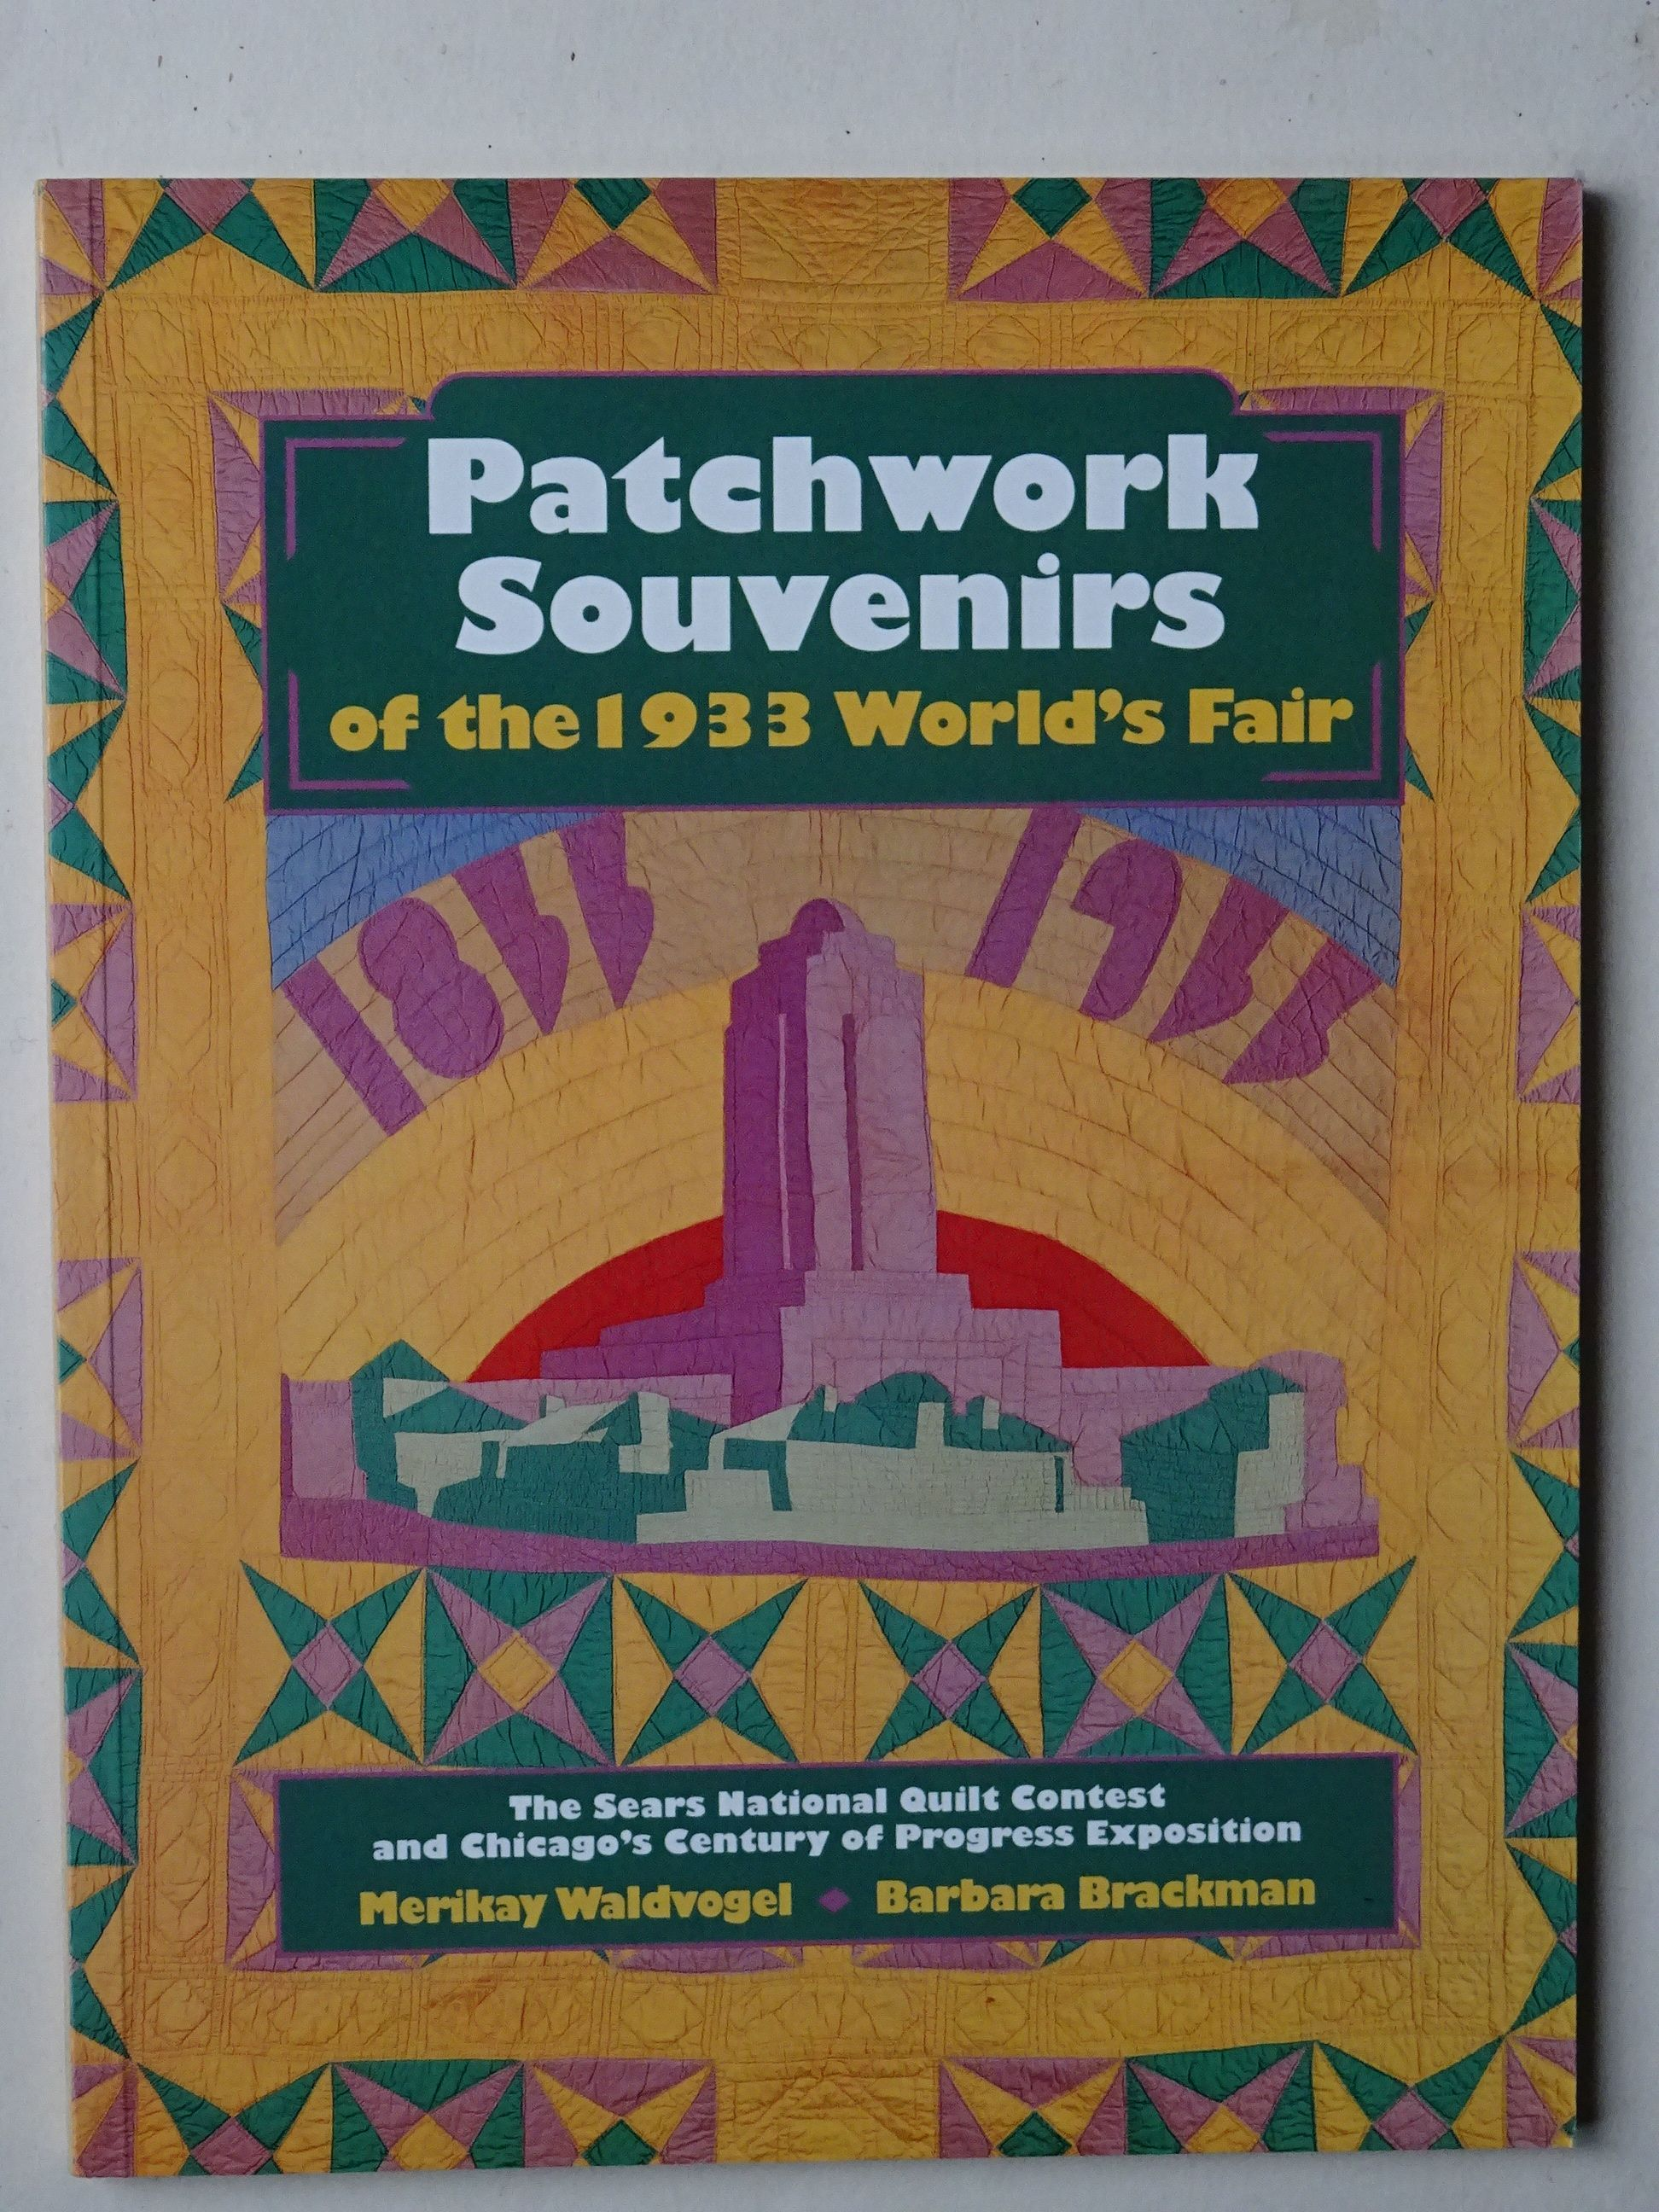 Waldvogel, Merikay & Brackman,Barbara – Patchwork Souvenirs of the 1933 World's Fair